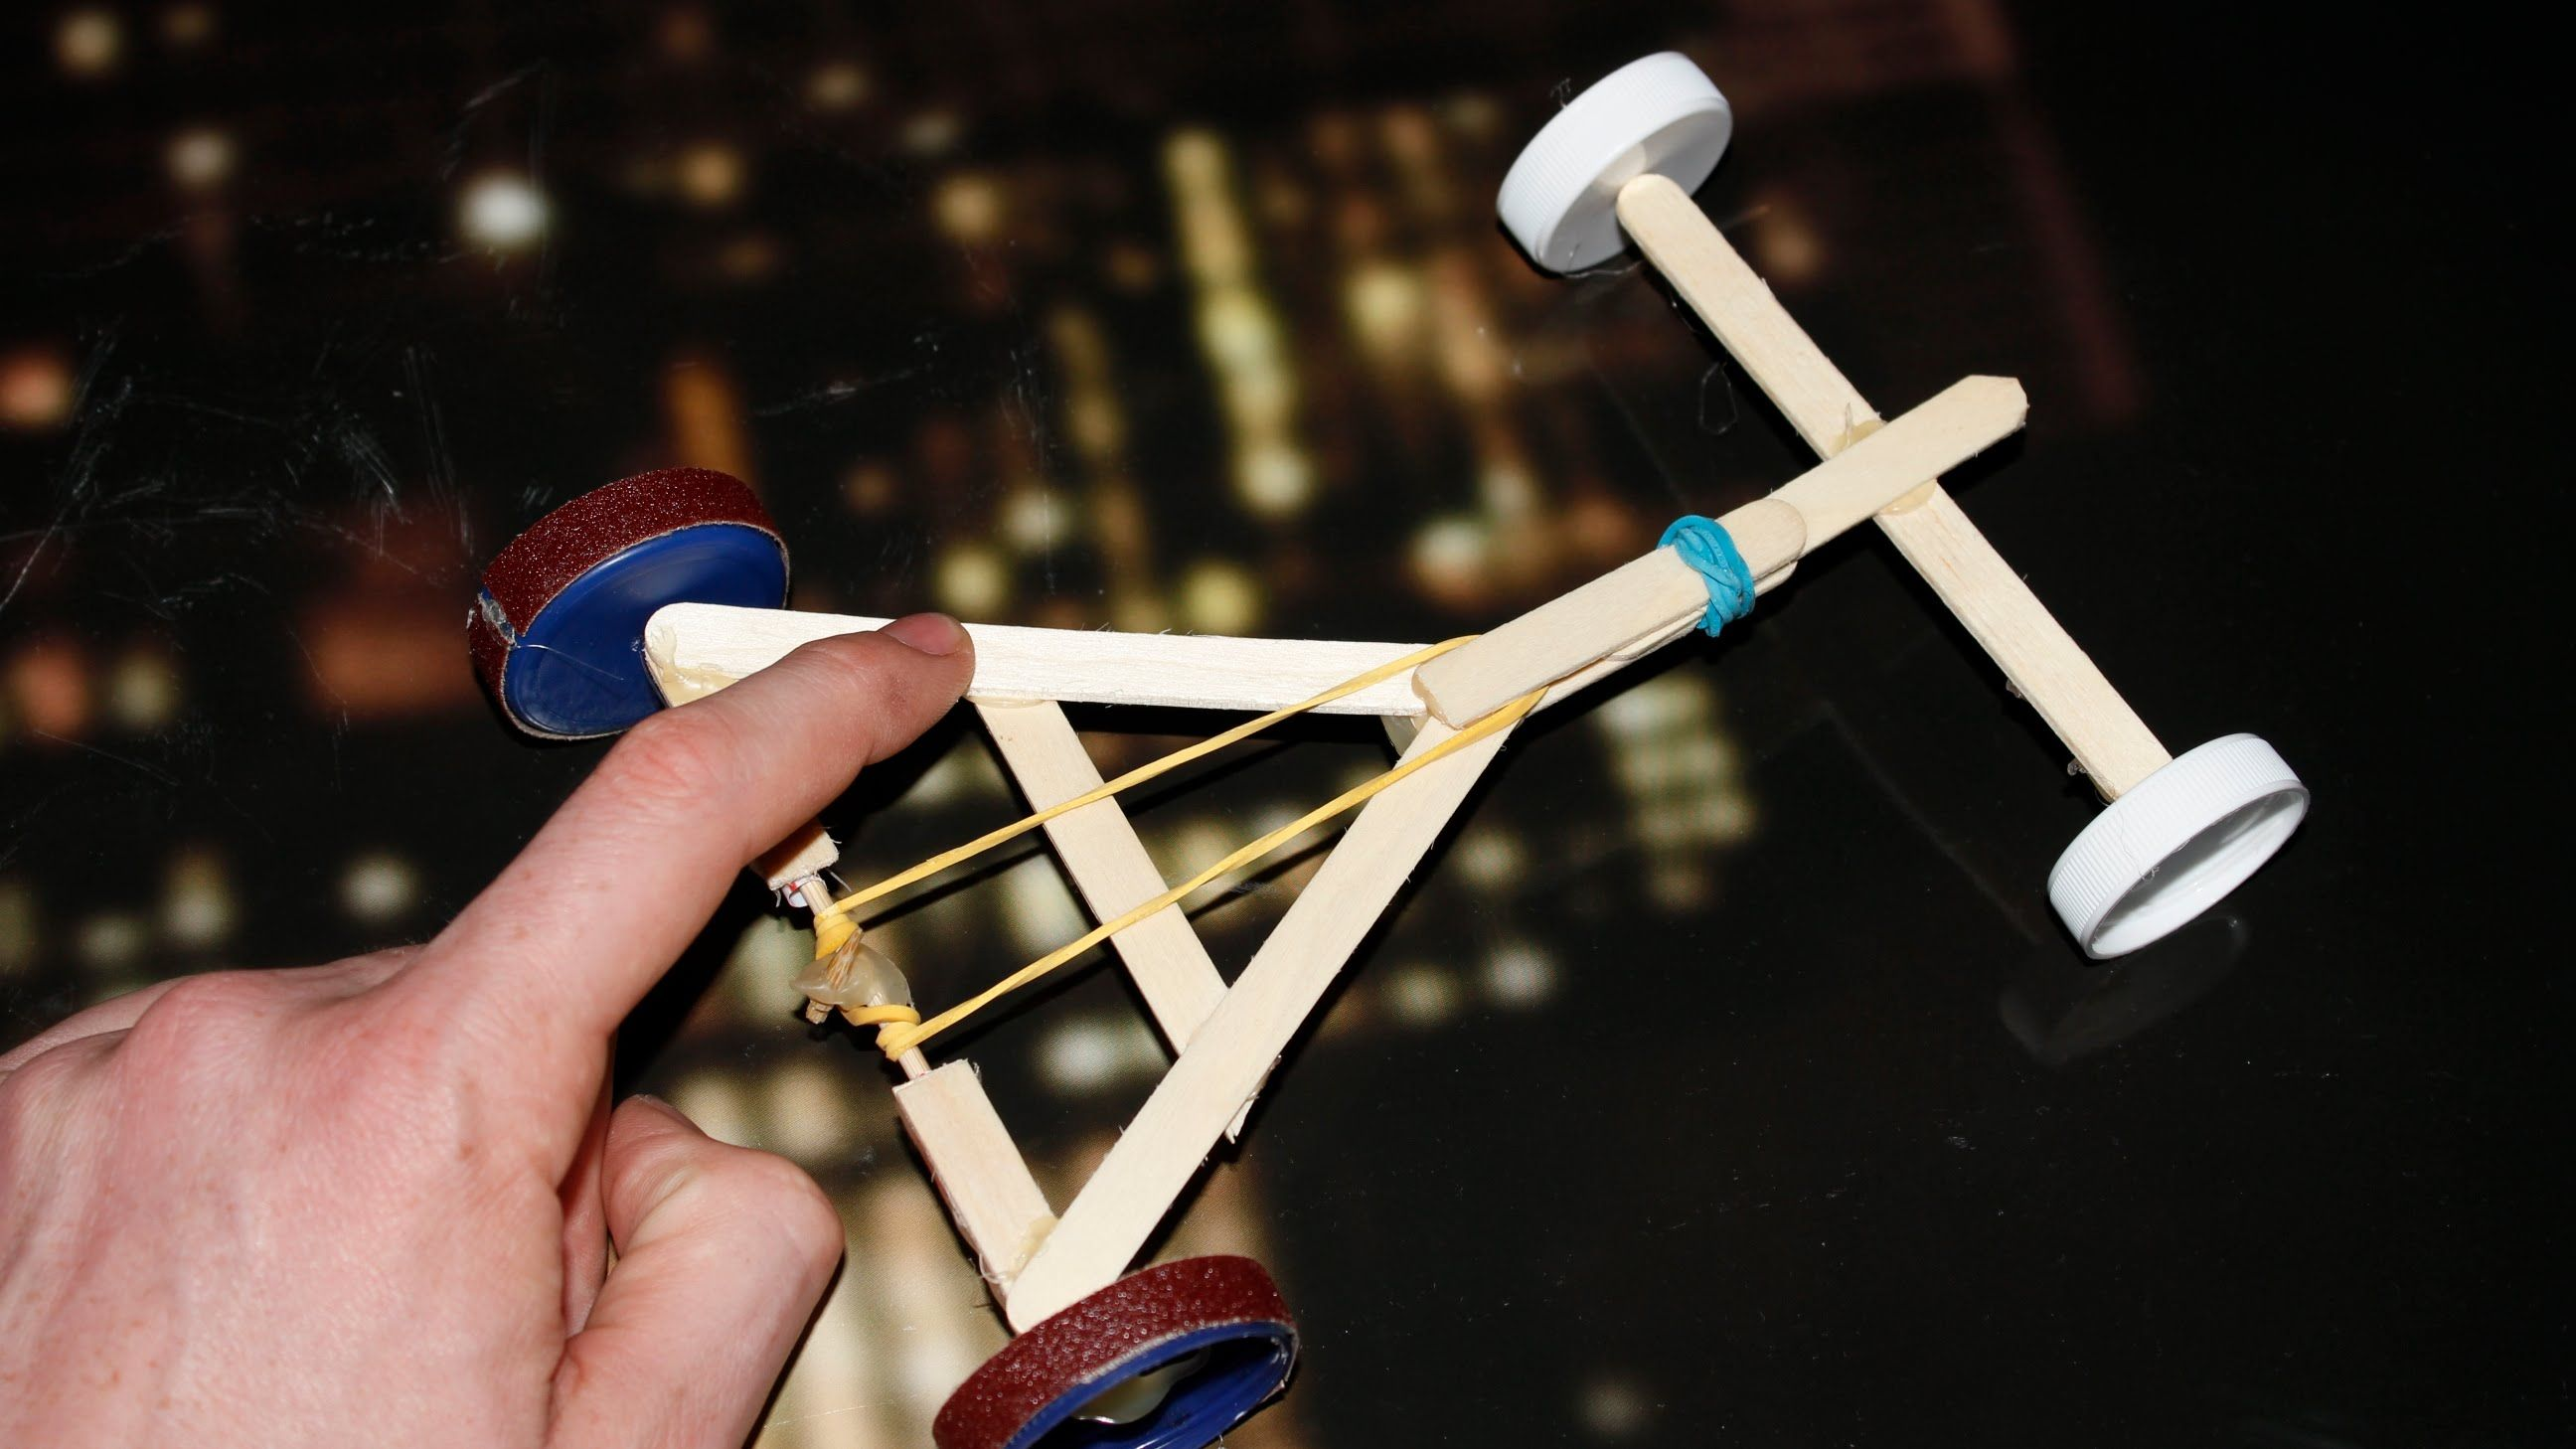 How to make a Rubber Band powered Car ( Homemade Toy